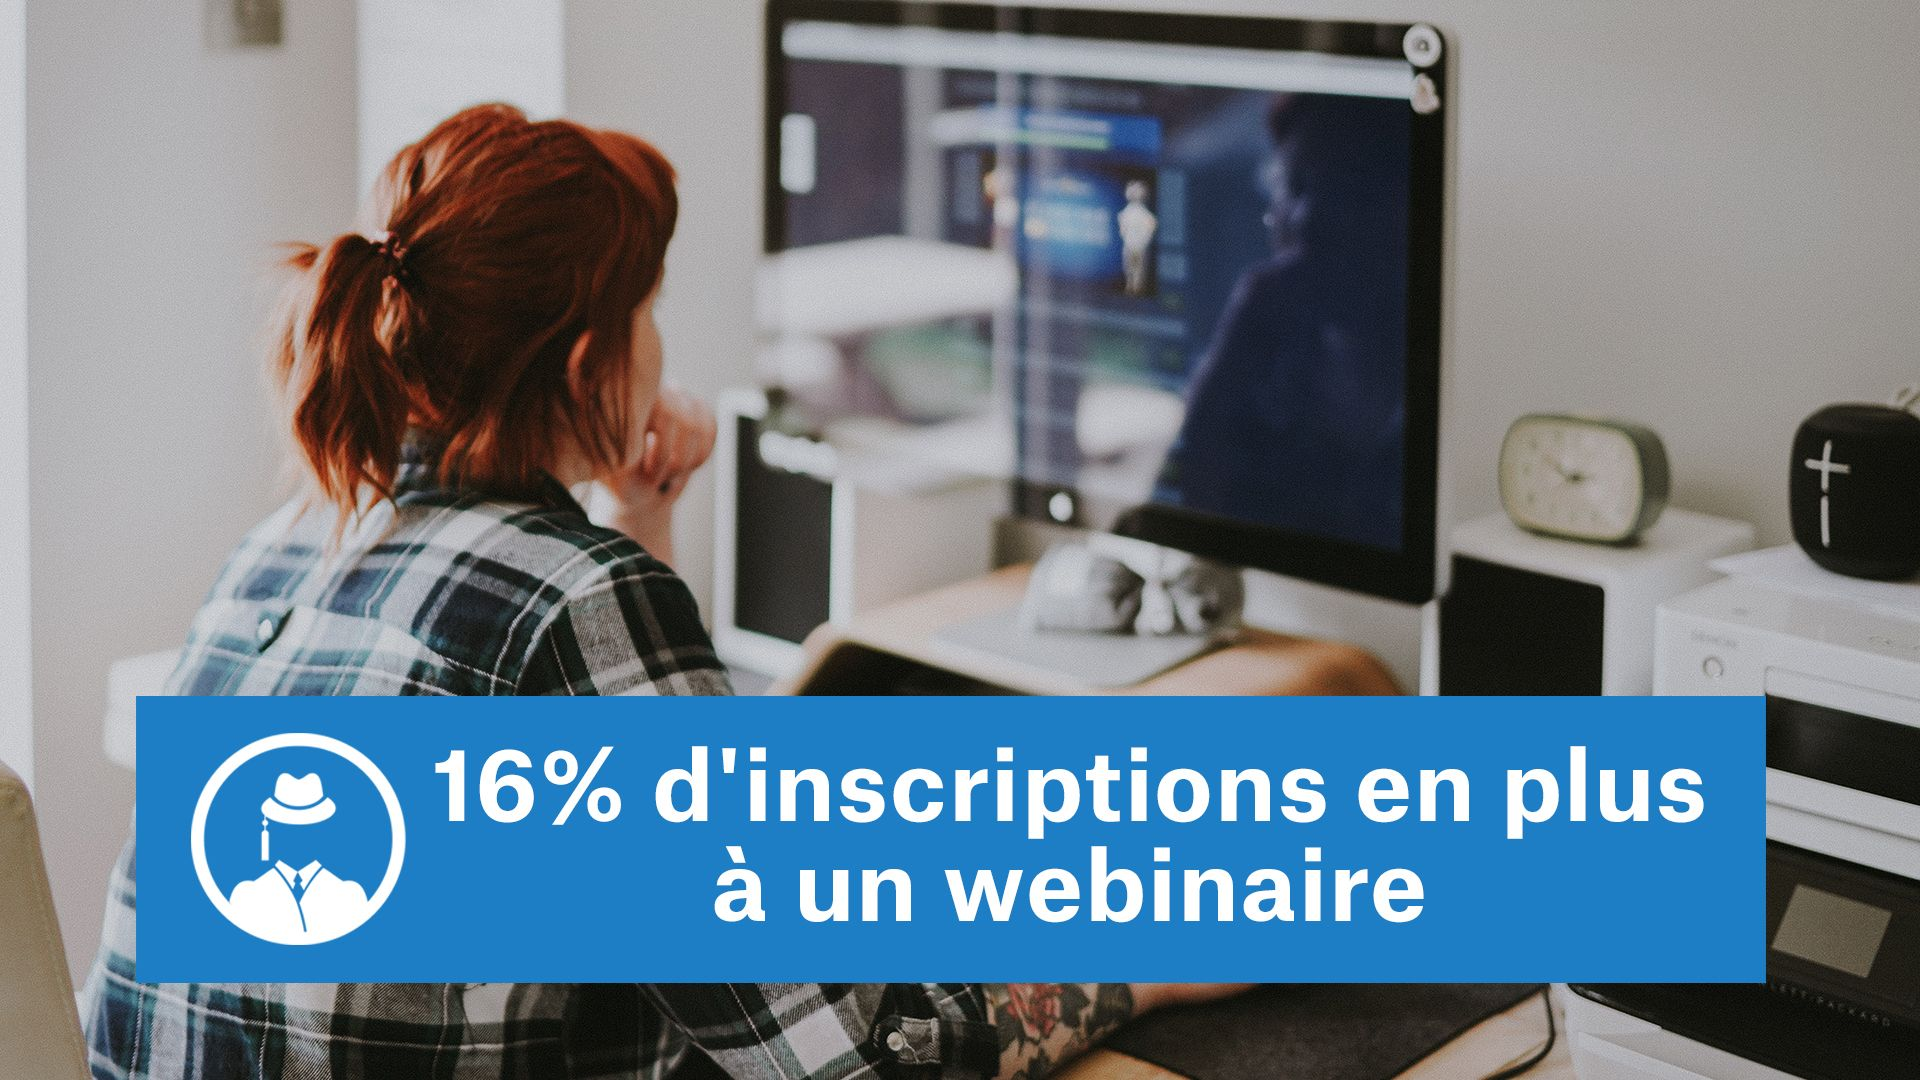 16% d'inscriptions en plus à un webinaire #GrowthHacking #WebMarketing #FormationGrowthHacking #CentreDeFormationFrance #TunnelAARRR #AARRR #SocialMedia #CommunityManagement #SEO #MarketingDigital #SiteWeb